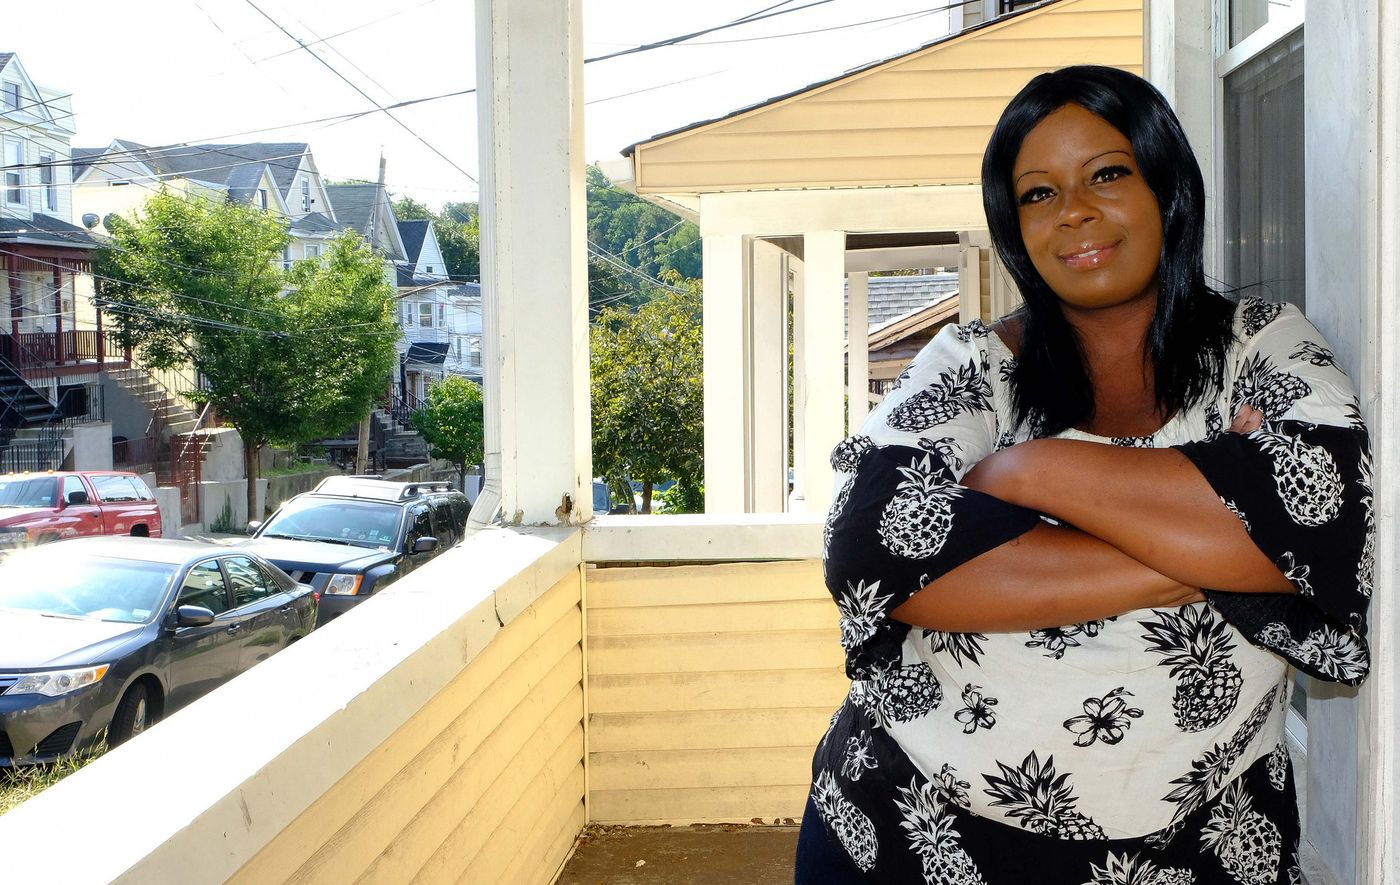 New York - September 30, 2016 - Tamica photographed outside her house in Staten Island, knows that her 16-year-old son would be better off away from the gray walls and iron bars of Rikers Island. ?He?s a kid, he shouldn?t be in jail. (Luiz C. Ribeiro / for New York Daily News)